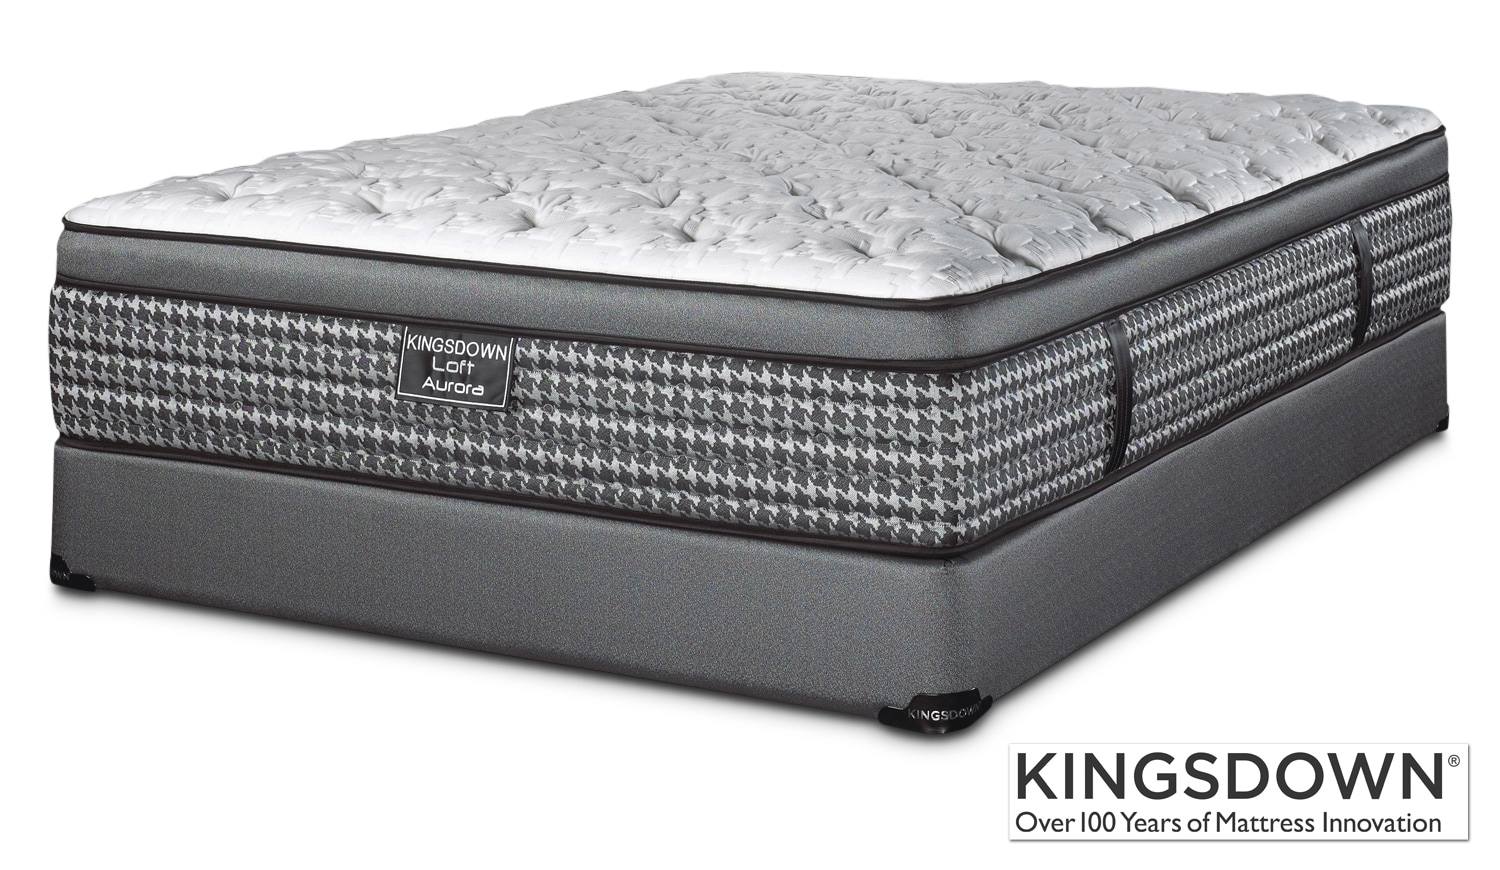 Kingsdown Aurora Twin Mattress/Boxspring Set